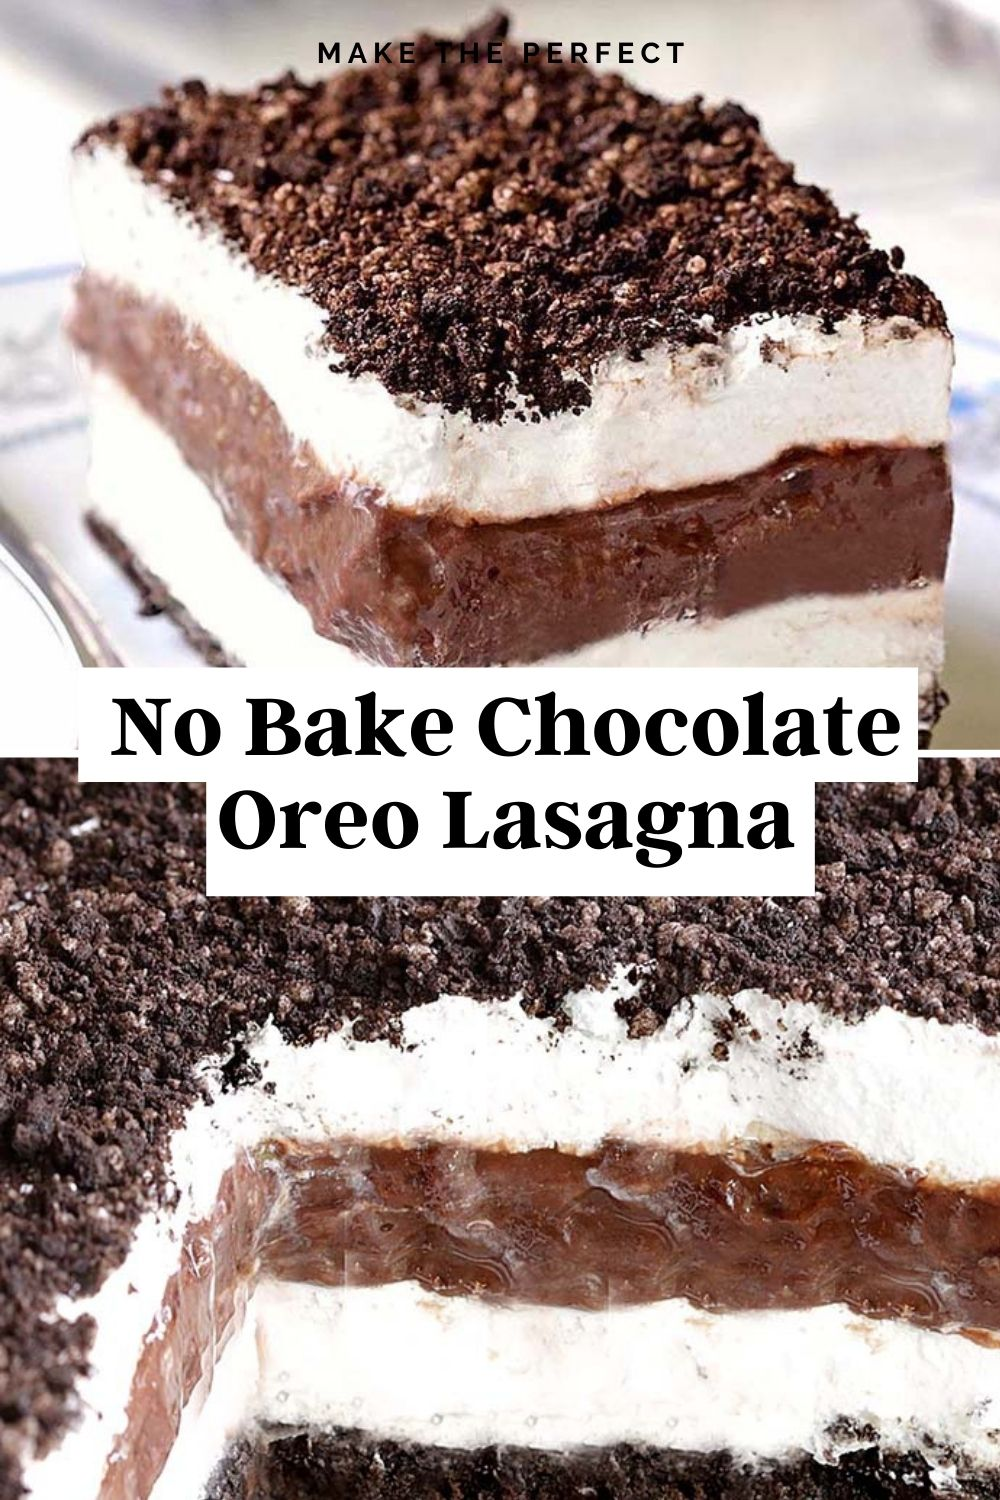 Easy No Bake Chocolate Oreo Lasagna Recipe #EasyNoBake #Chocolate #Oreo #Lasagna #Recipe